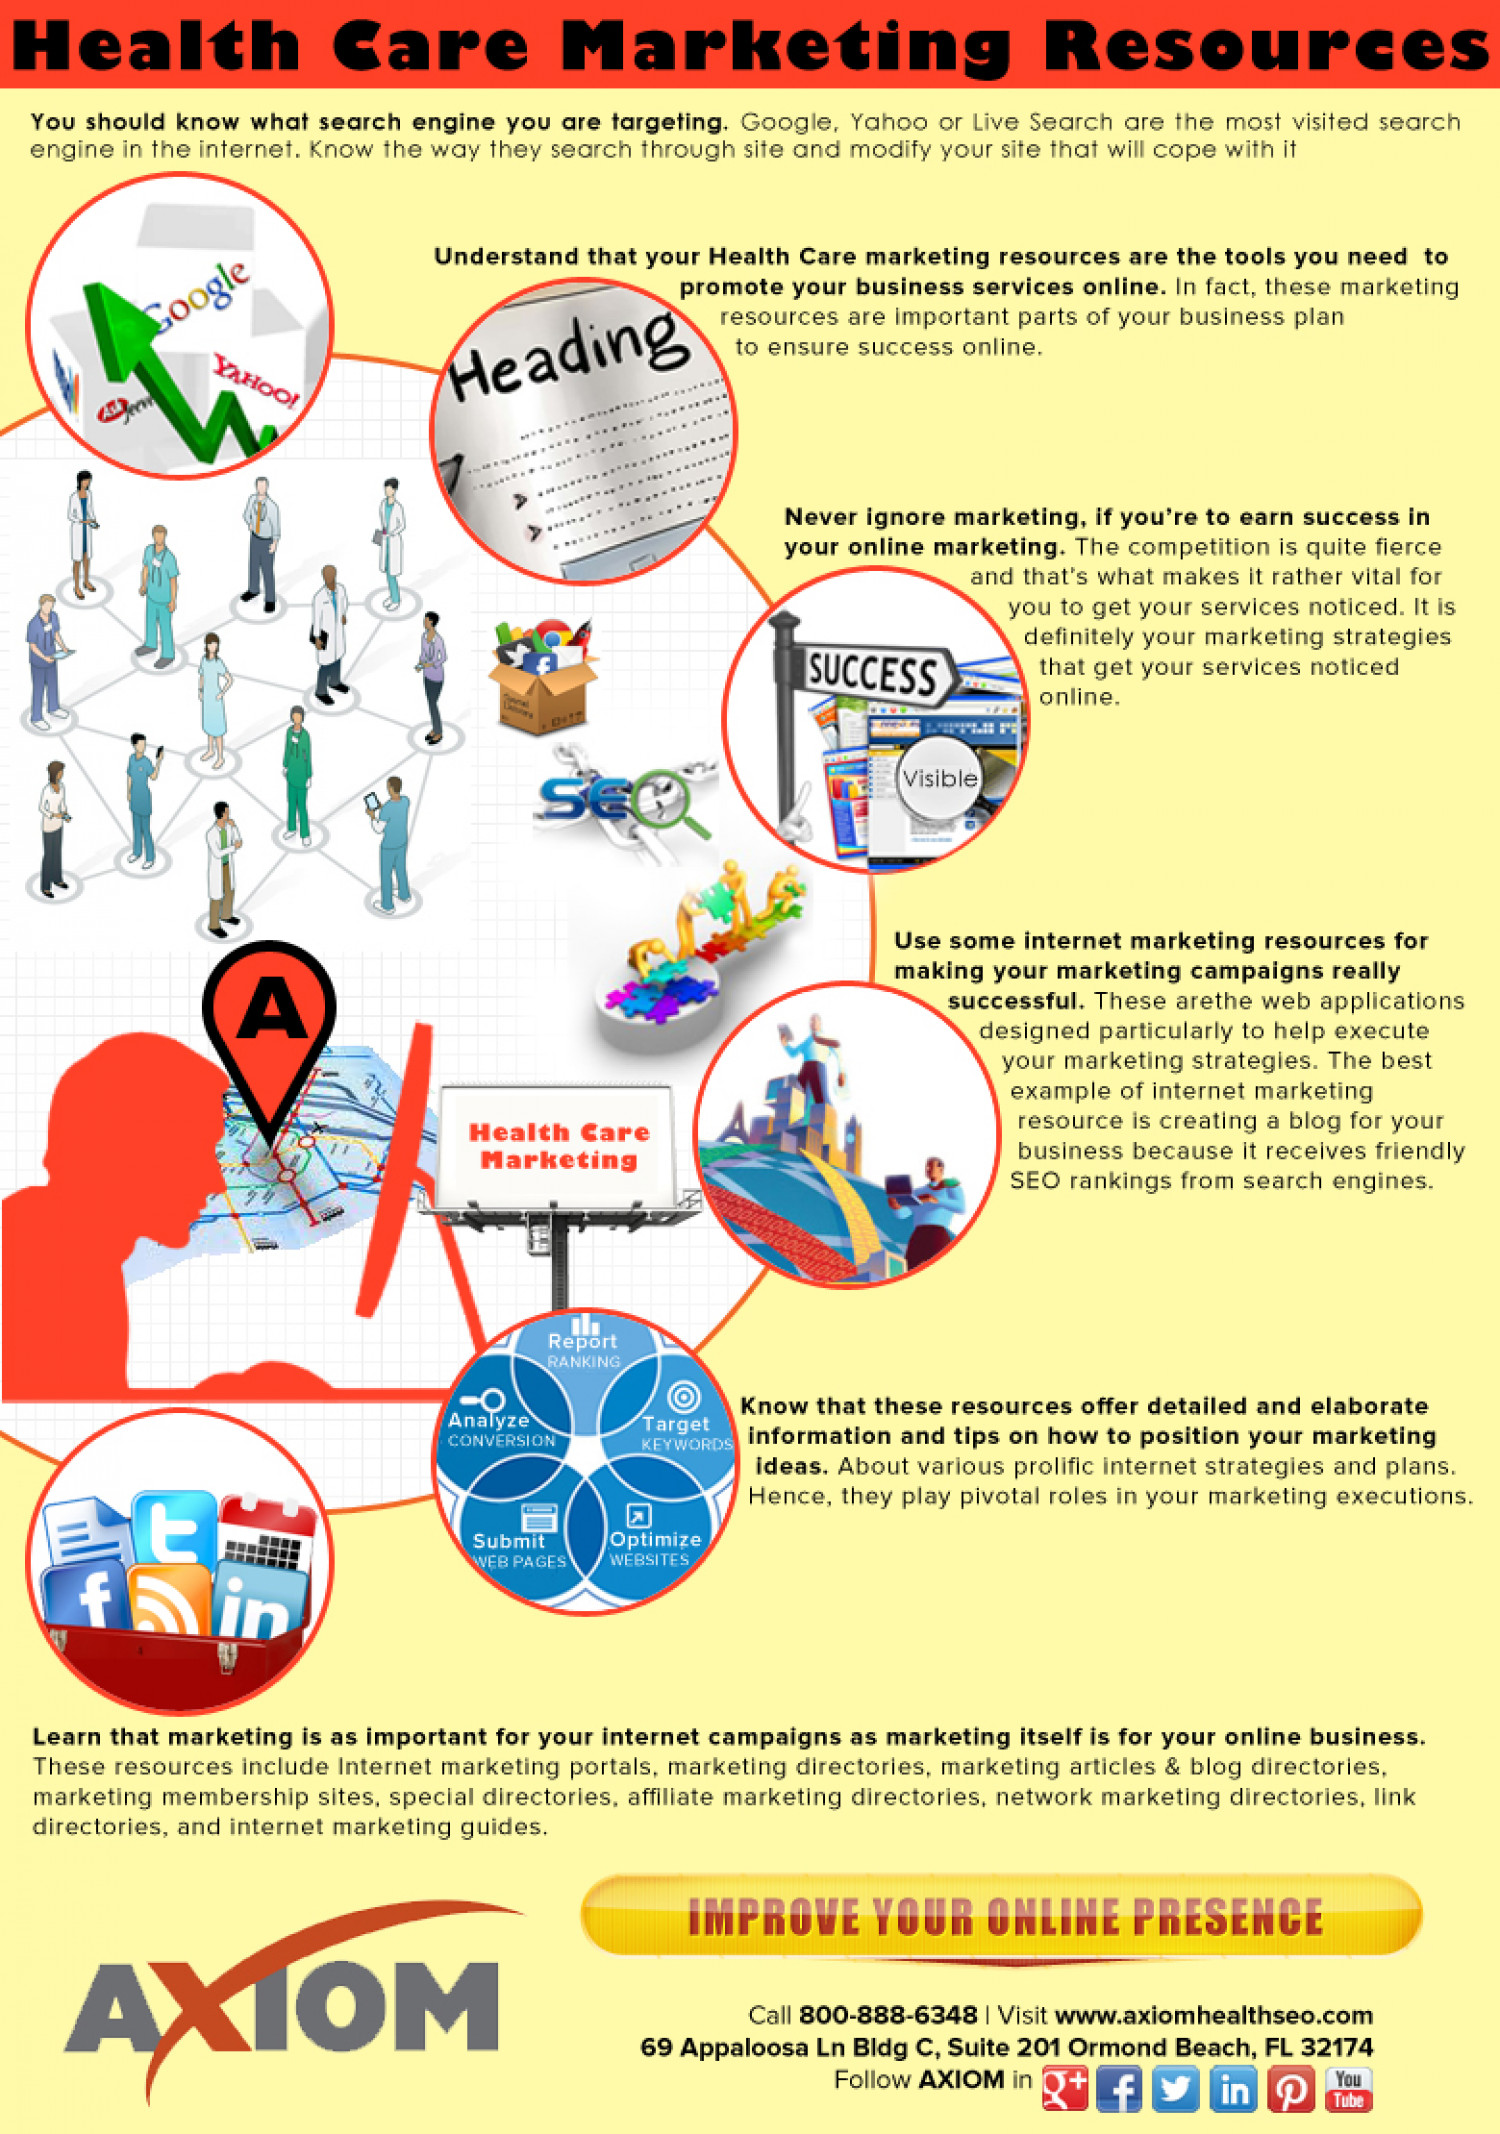 Healthcare Marketing Resources Infographic